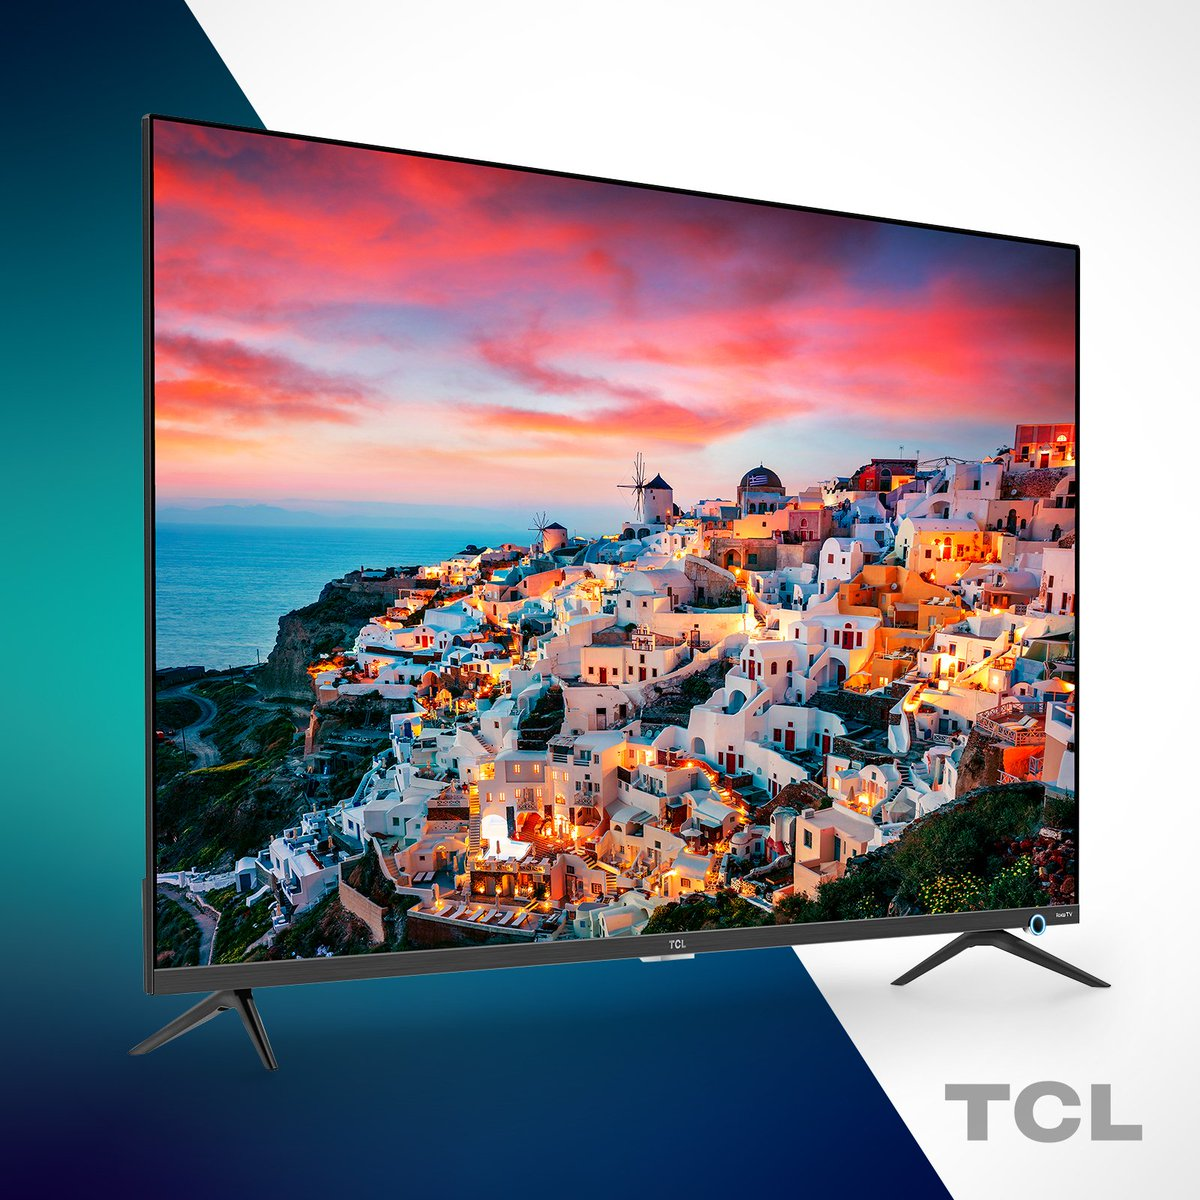 TCL USA on Twitter: